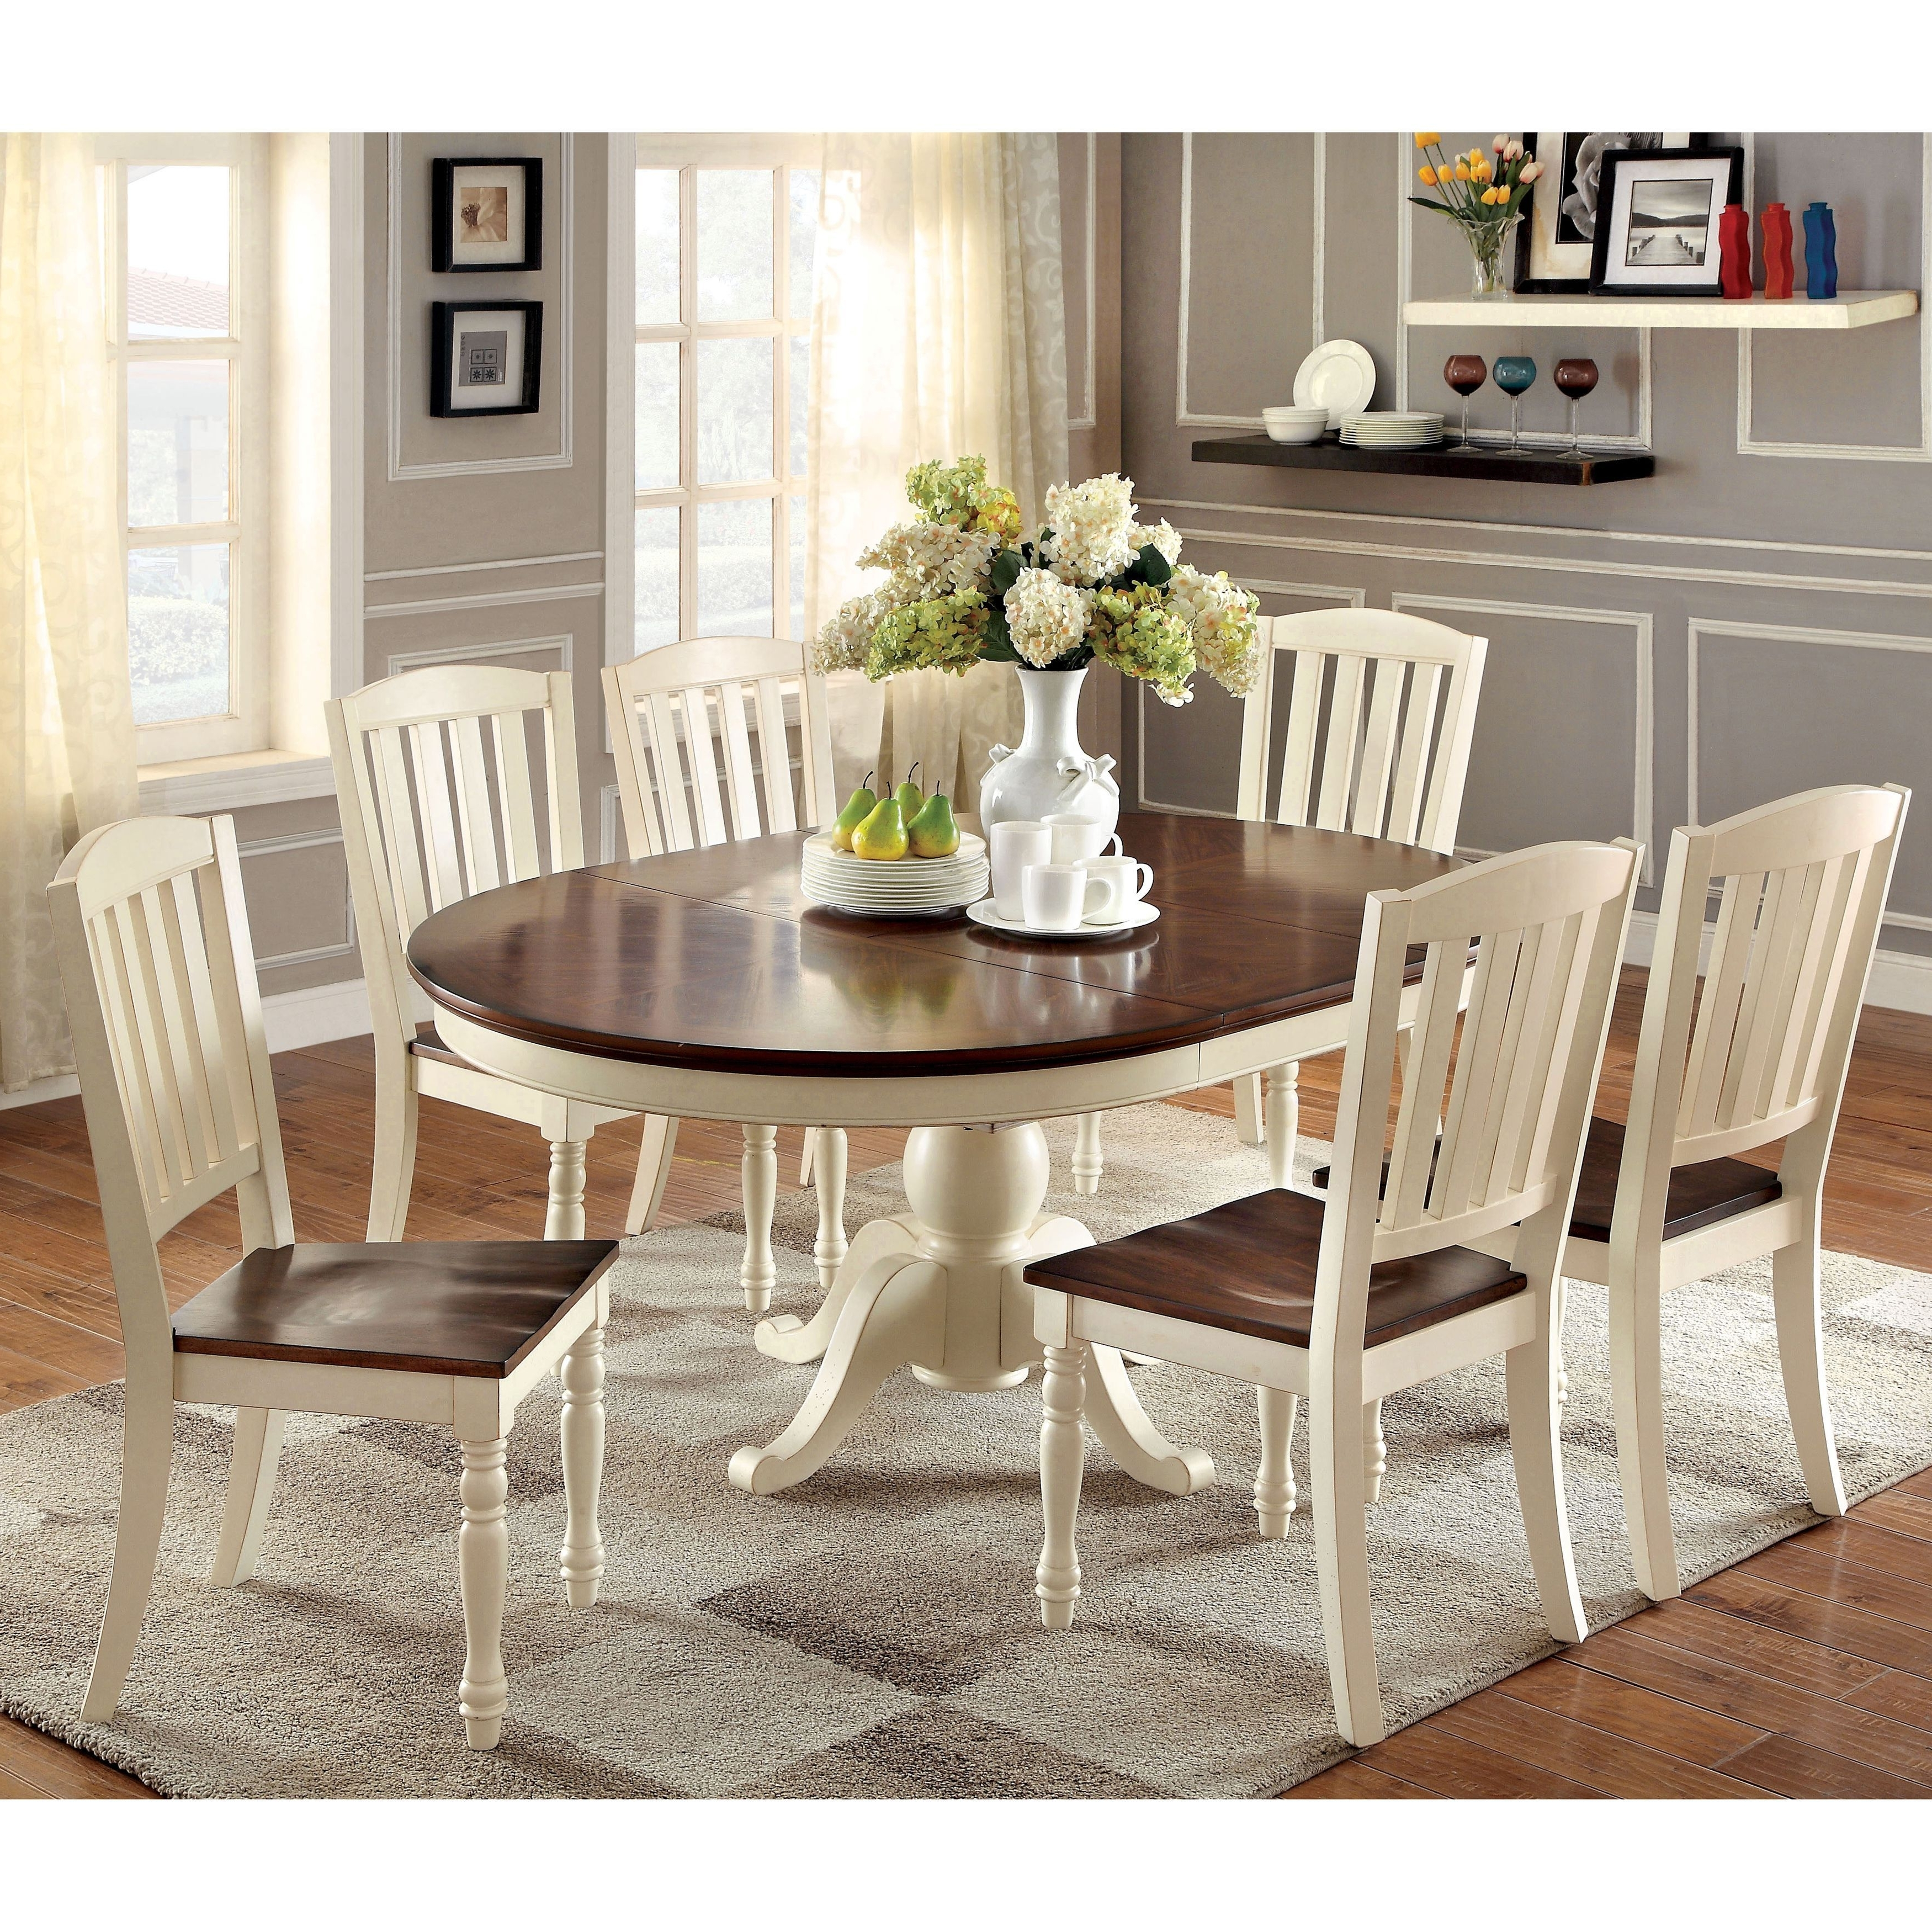 Furniture Of America Bethannie 7 Piece Cottage Style Oval Dining Set Inside 2017 Kirsten 5 Piece Dining Sets (View 7 of 25)